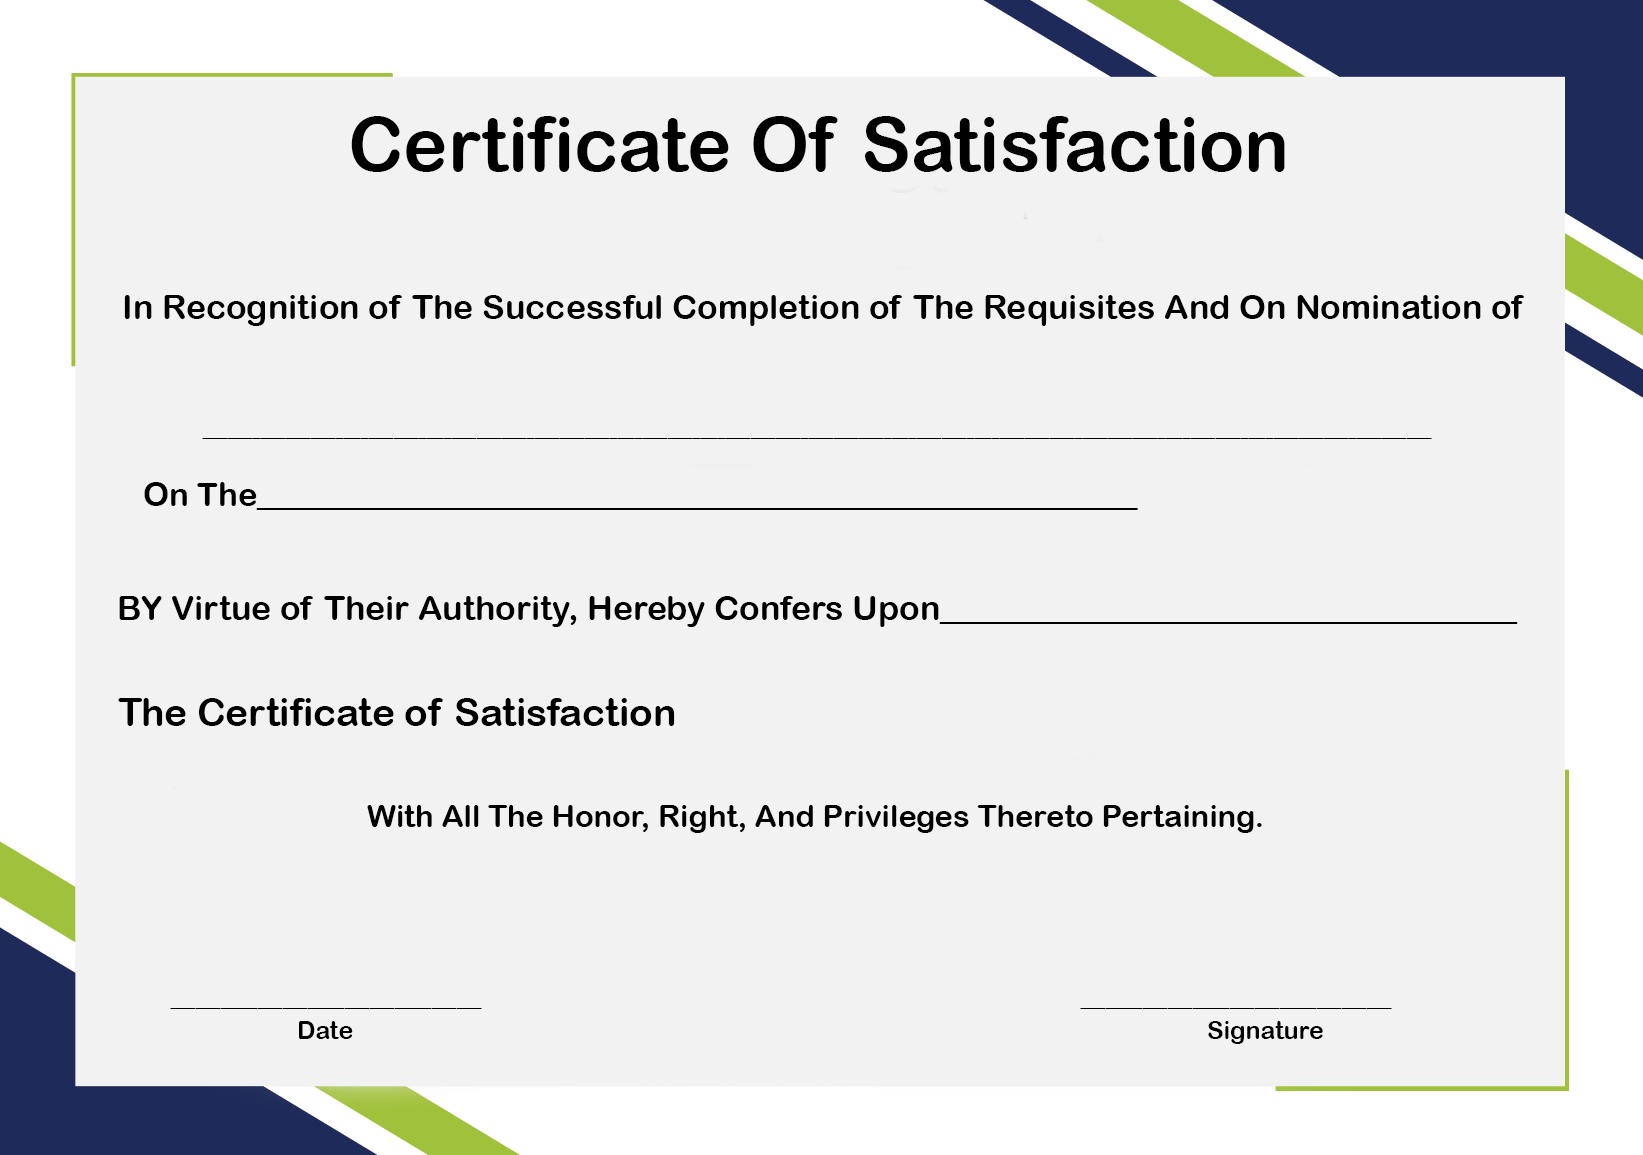 Certificate of Satisfaction Form